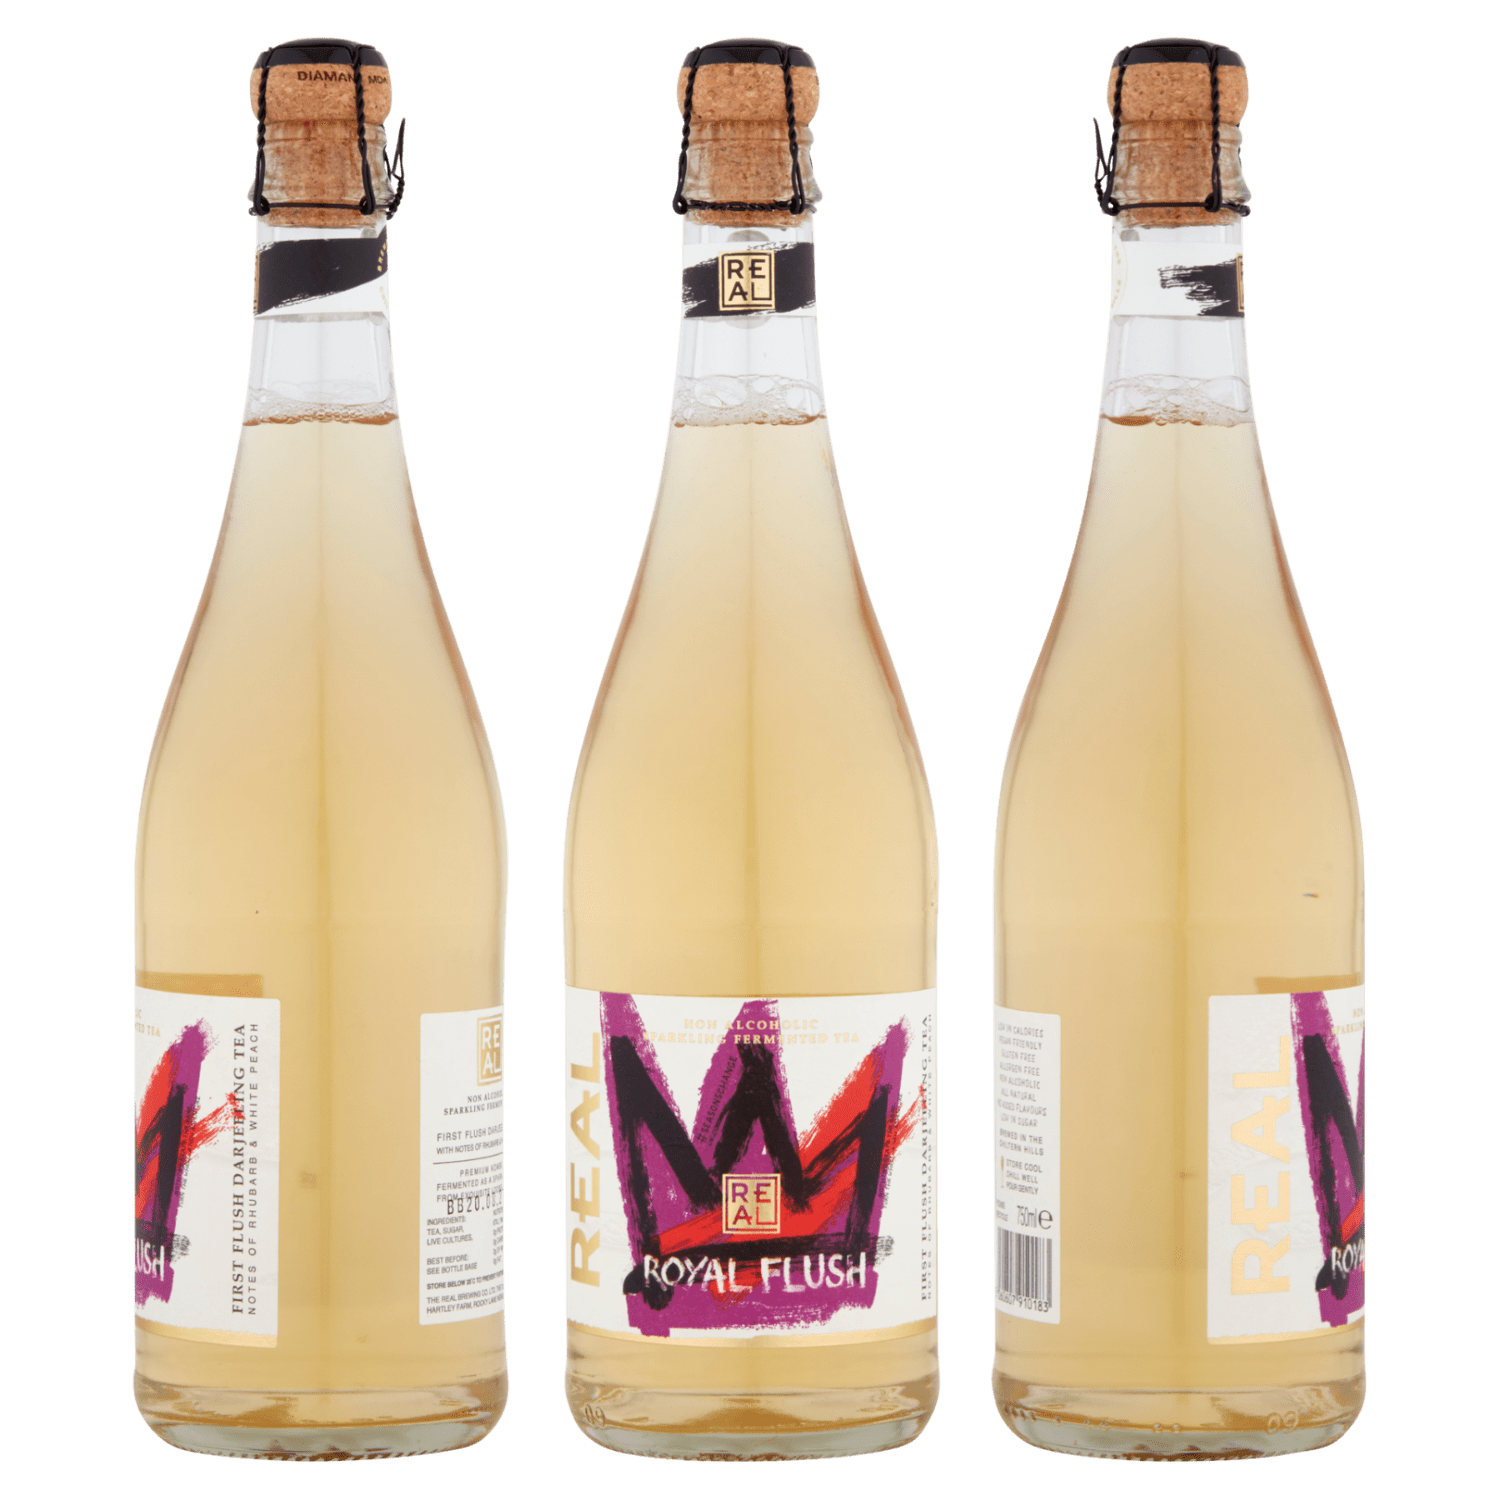 750ml bottles of REAL Kombucha Royal Flush